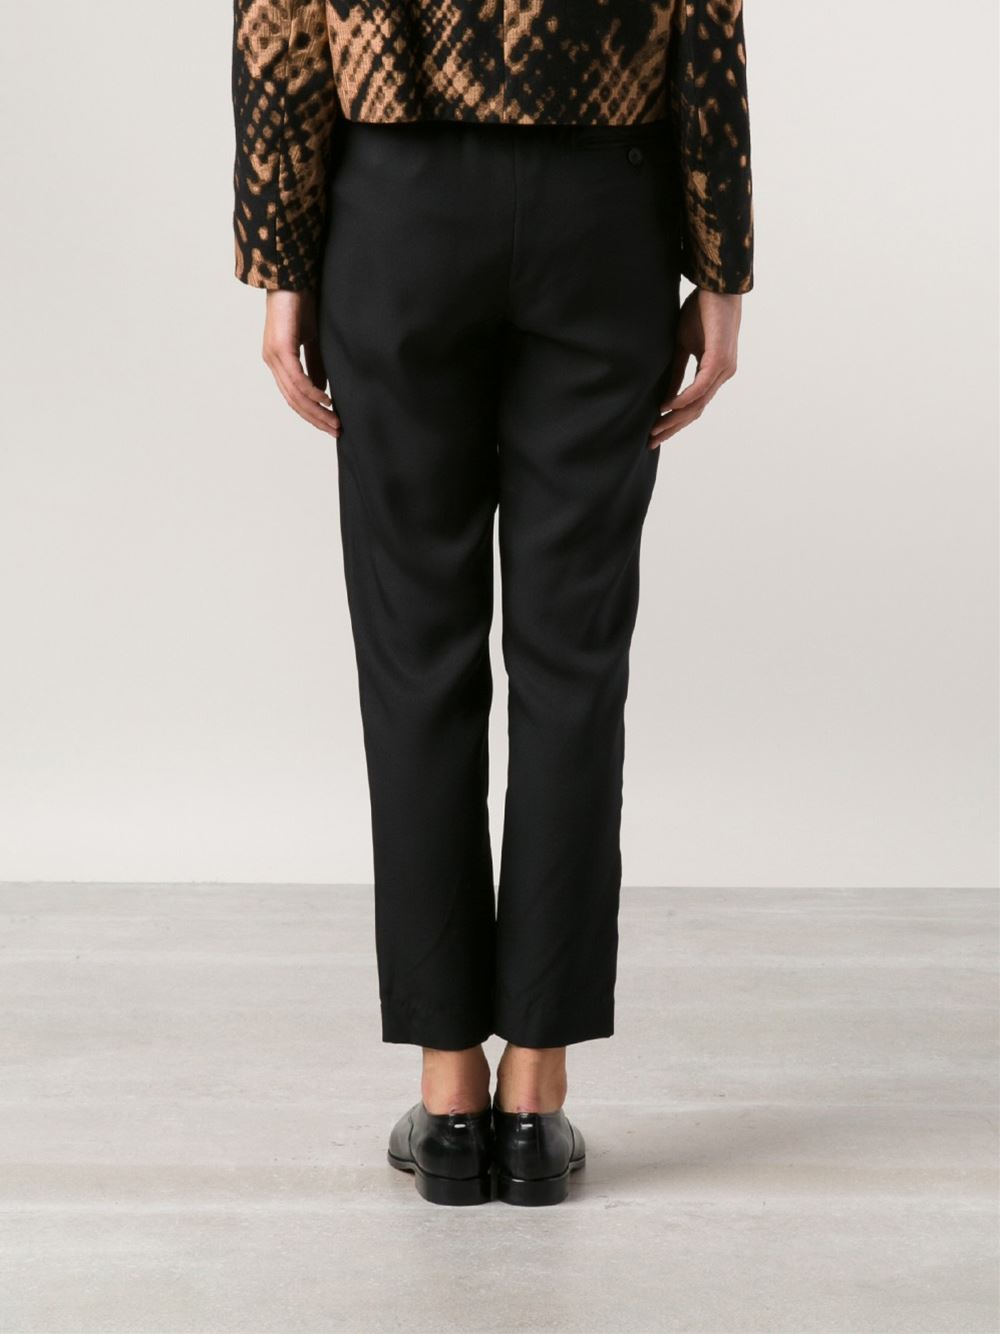 3.1 phillip lim Draped Trousers in Black | Lyst